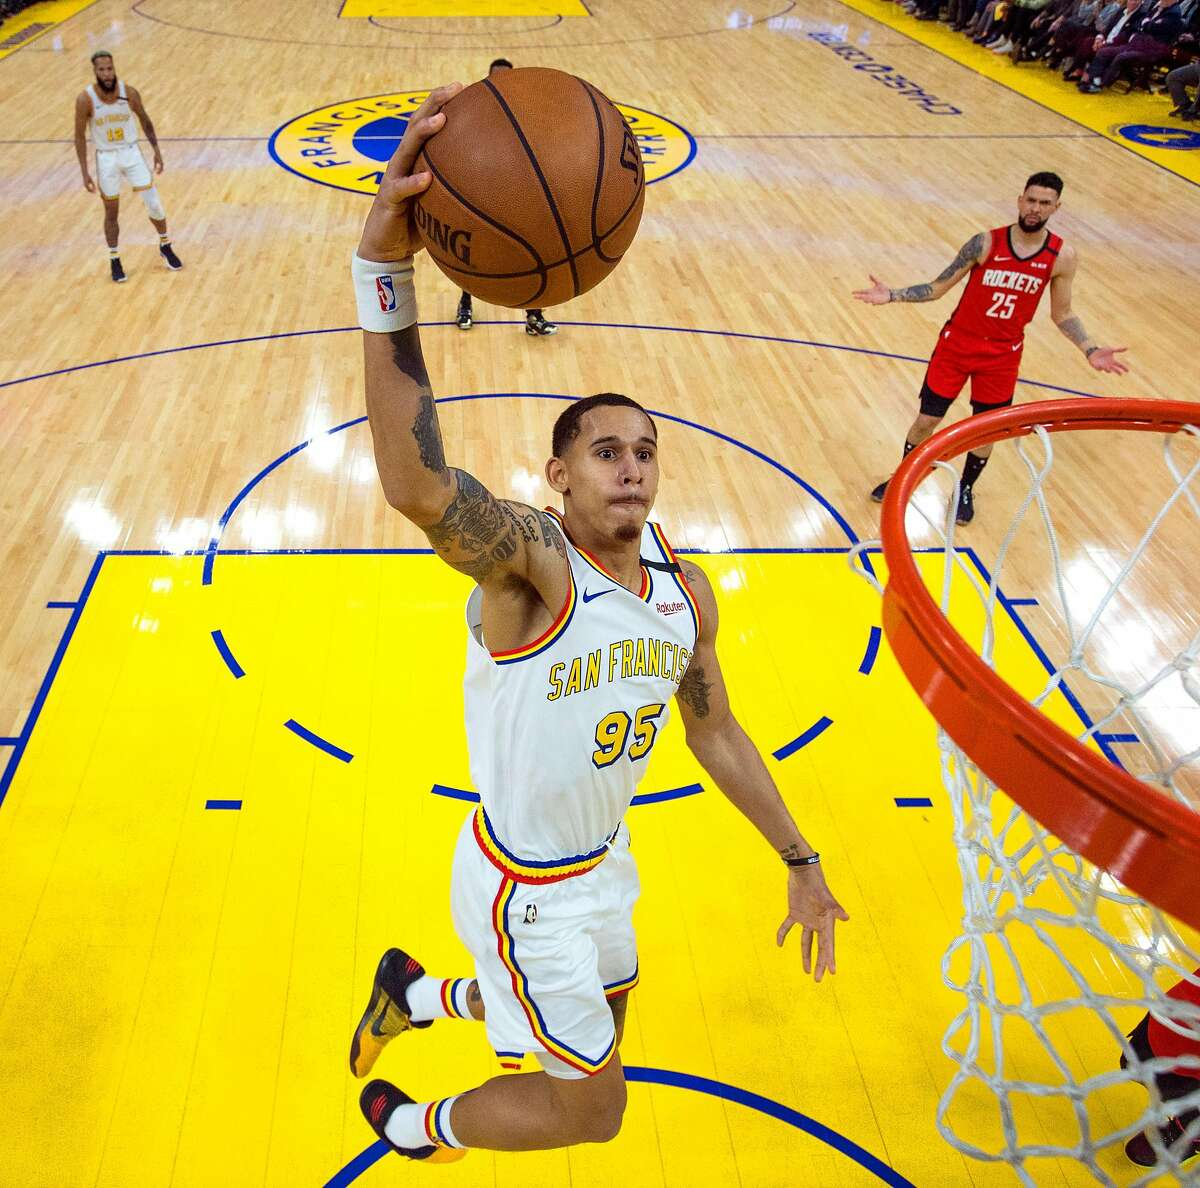 Juan Toscano-Anderson (95) dunks in the first half as the Golden State Warriors played the Houston Rockets at Chase Center in San Francisco, Calif., on Thursday, February 20, 2020.